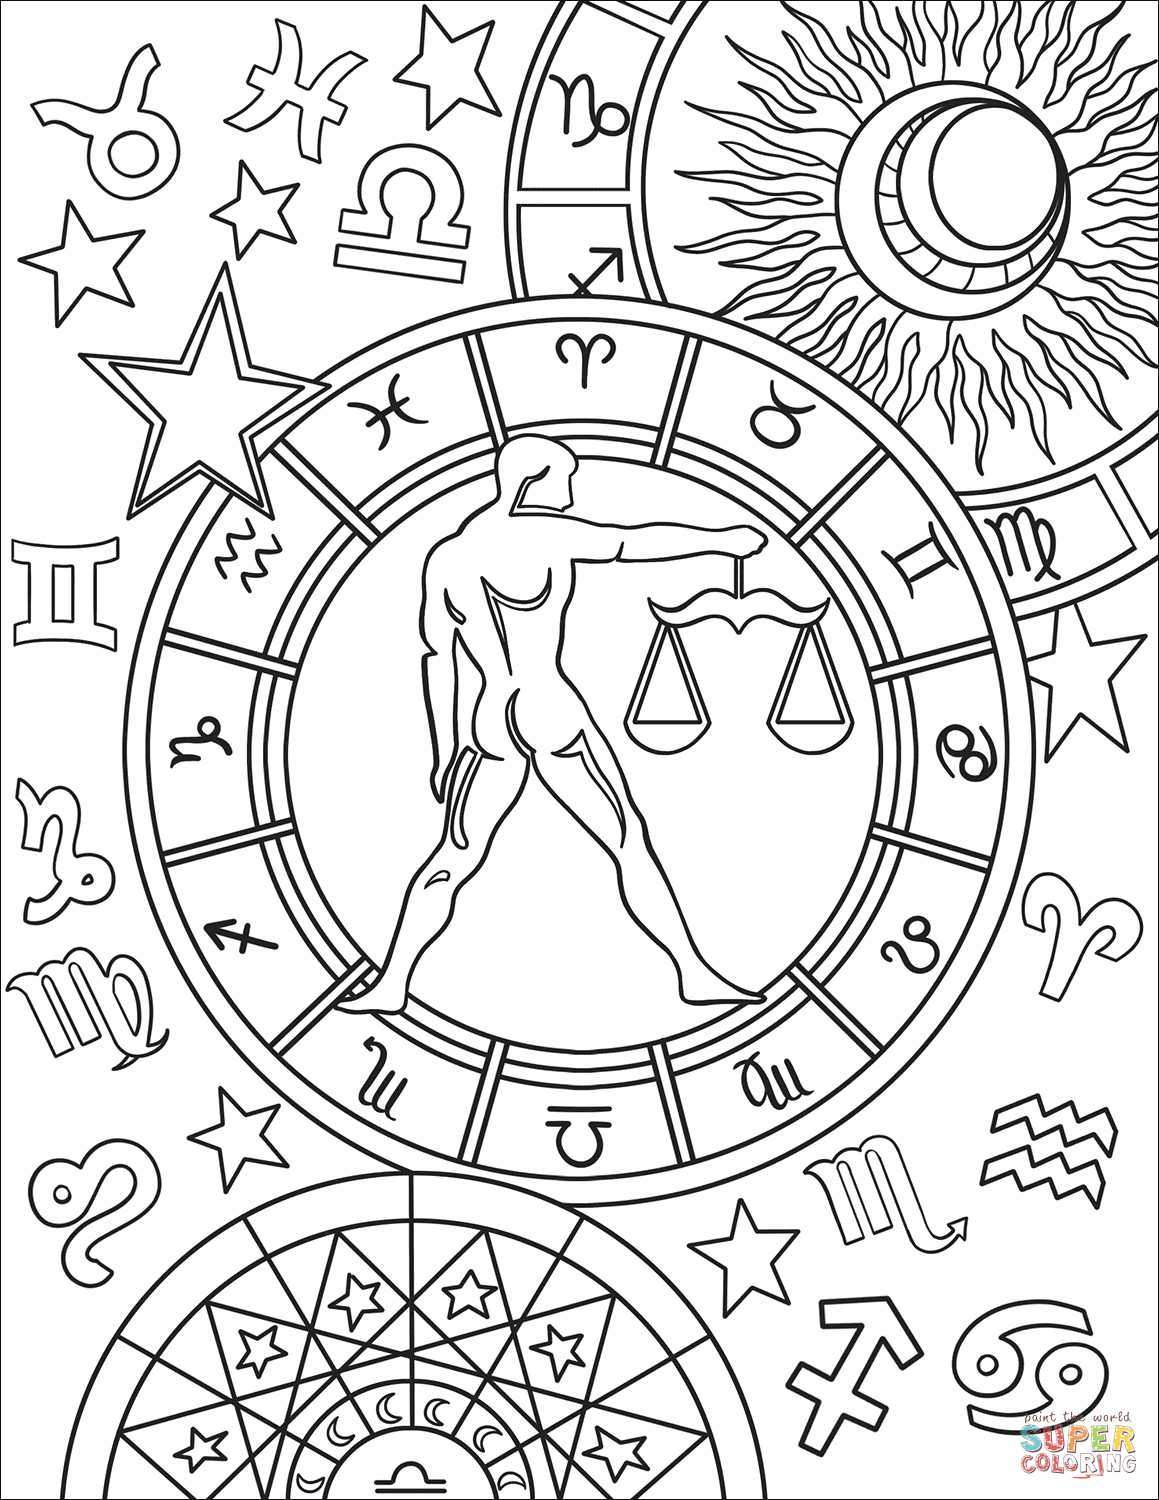 zodiac signs coloring pages zodiac signs to print zodiac signs kids coloring pages zodiac pages signs coloring